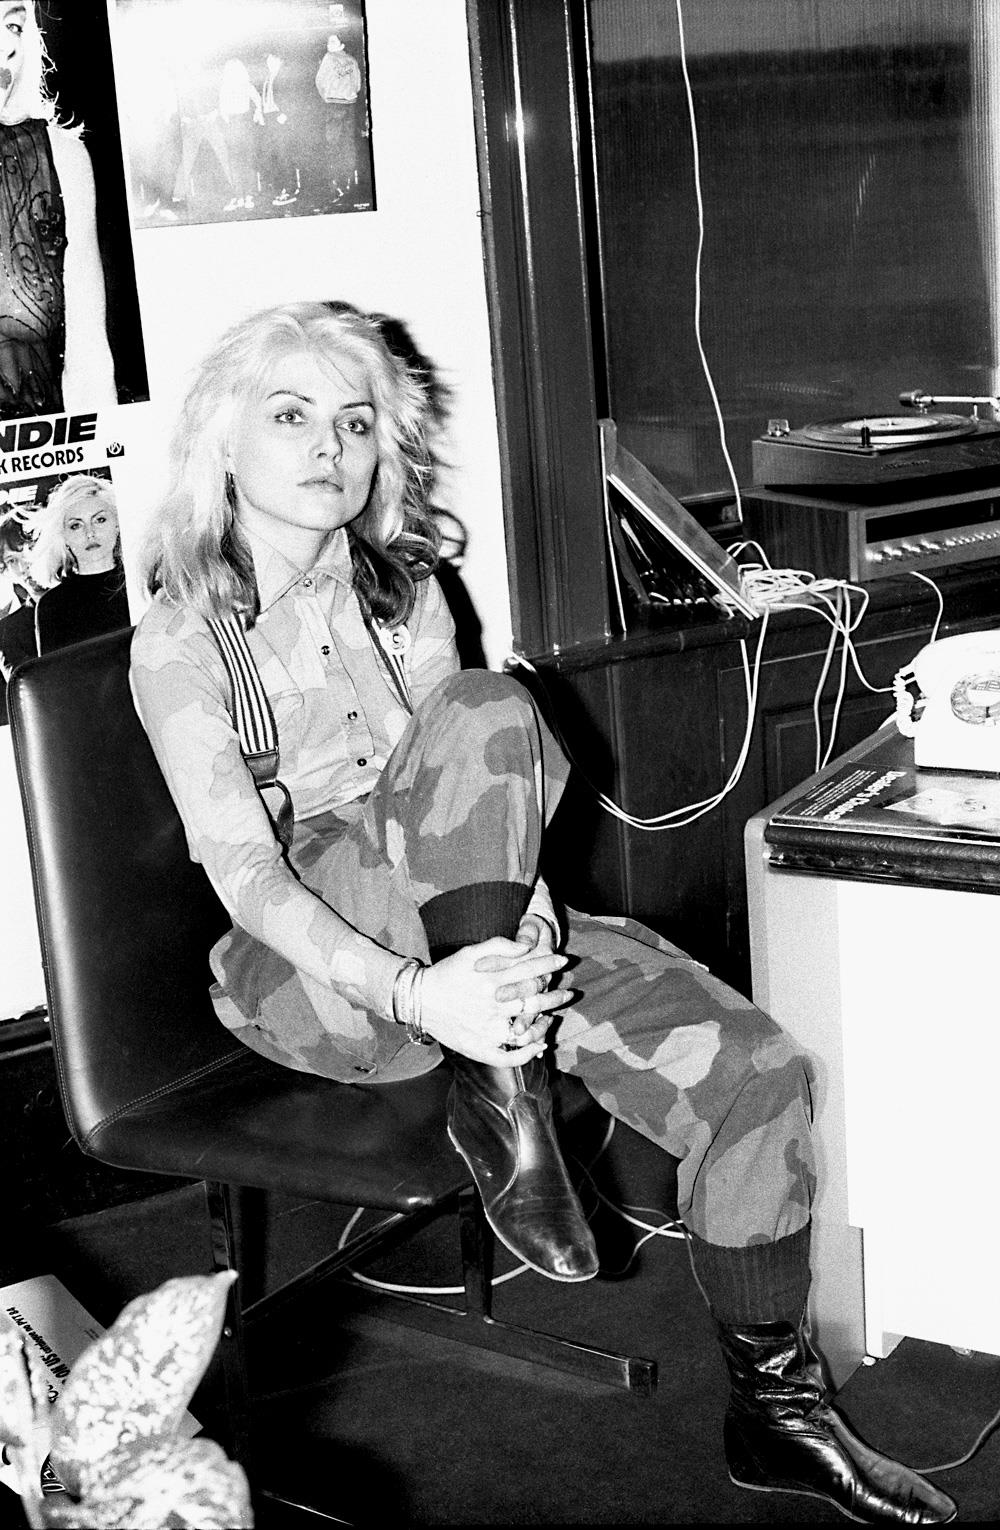 Blondie, Debbie Harry in London, 1977 by Jill Furmanovsky